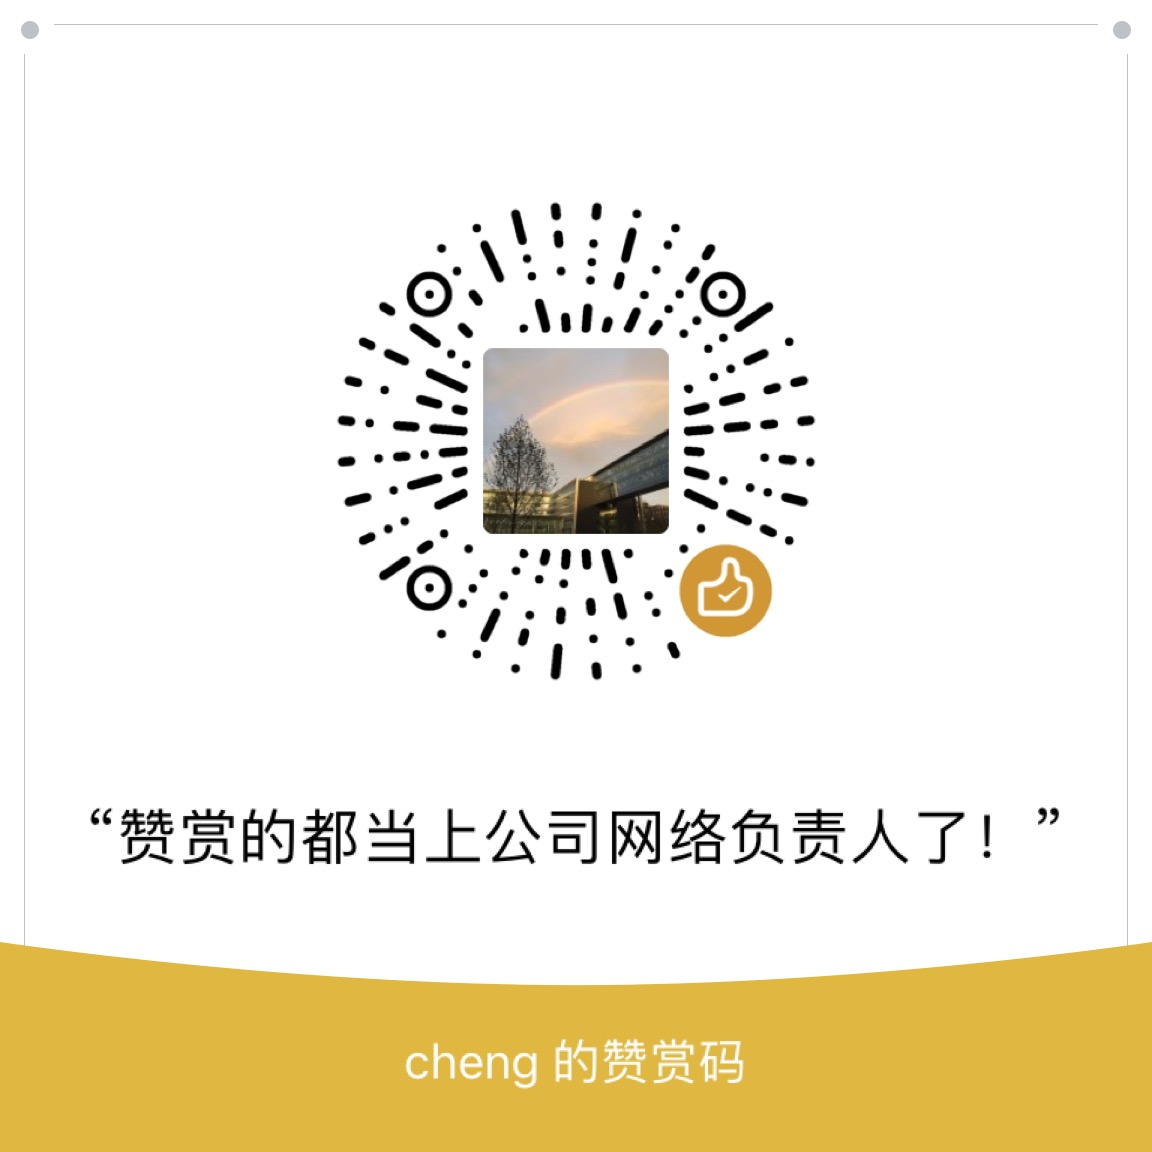 jeffry cheng WeChat Pay